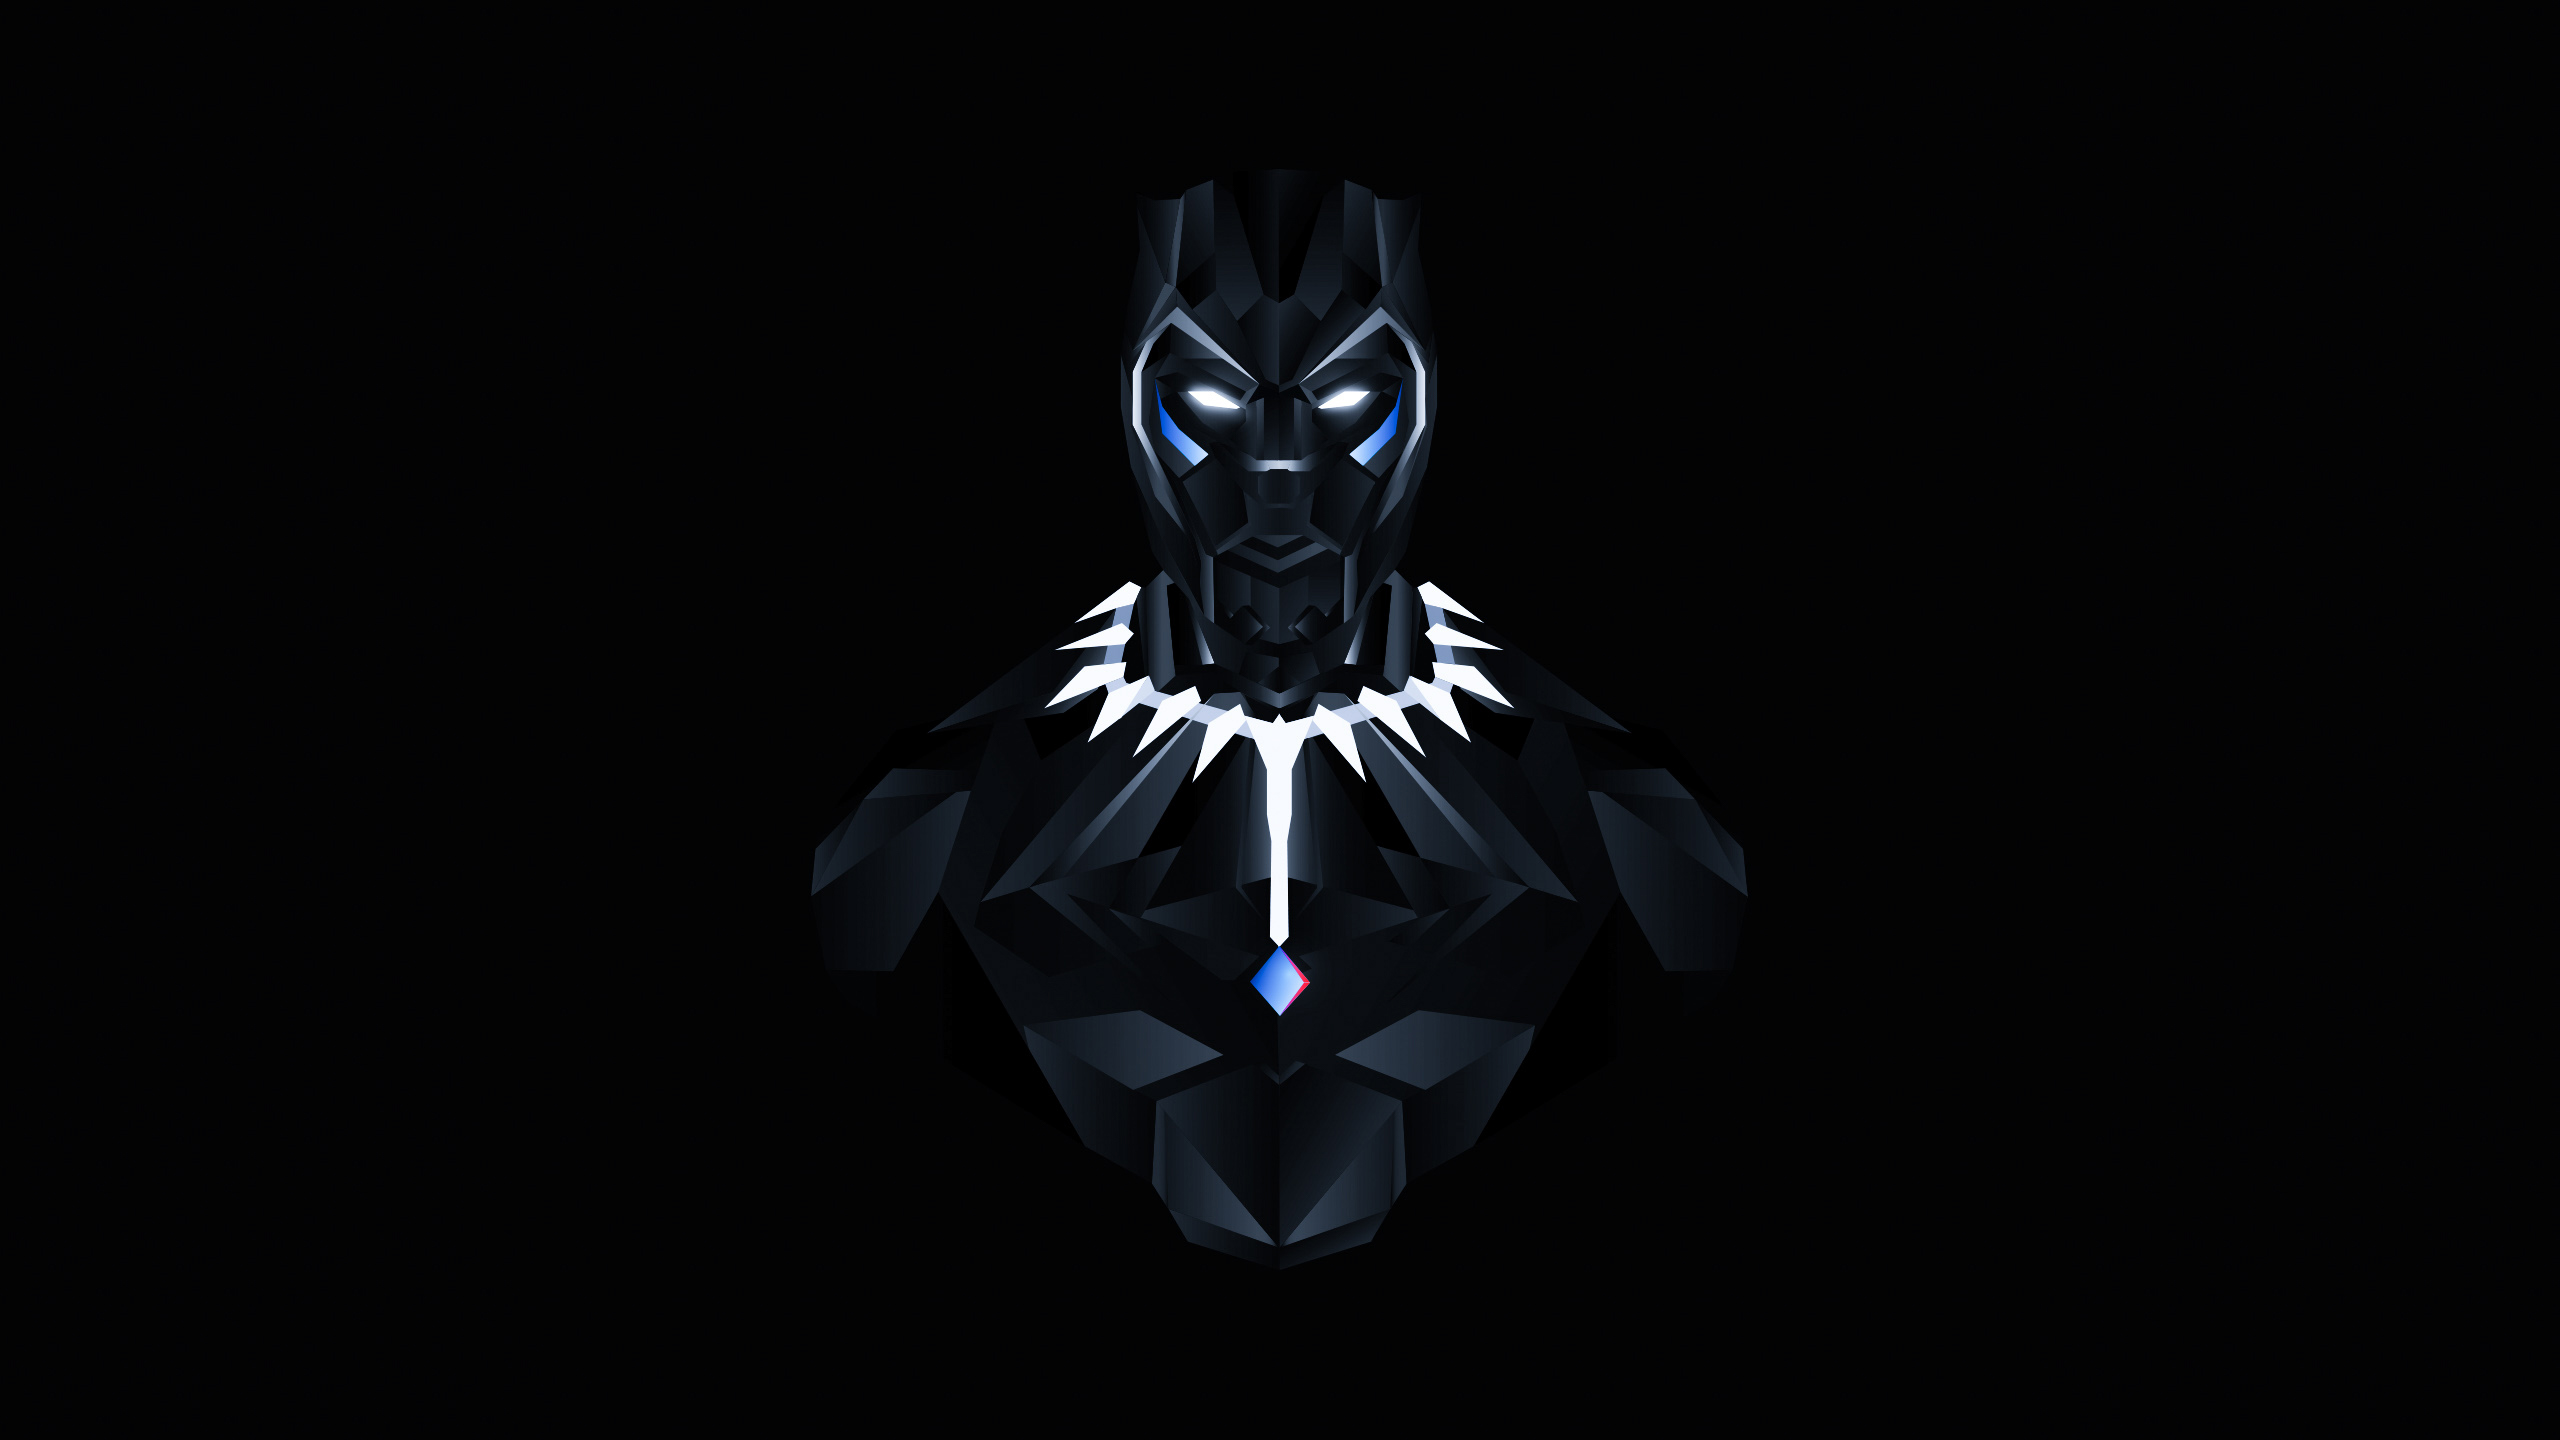 Wallpaper Black Panther, Minimalism, Marvel, Comics picture & HD photo